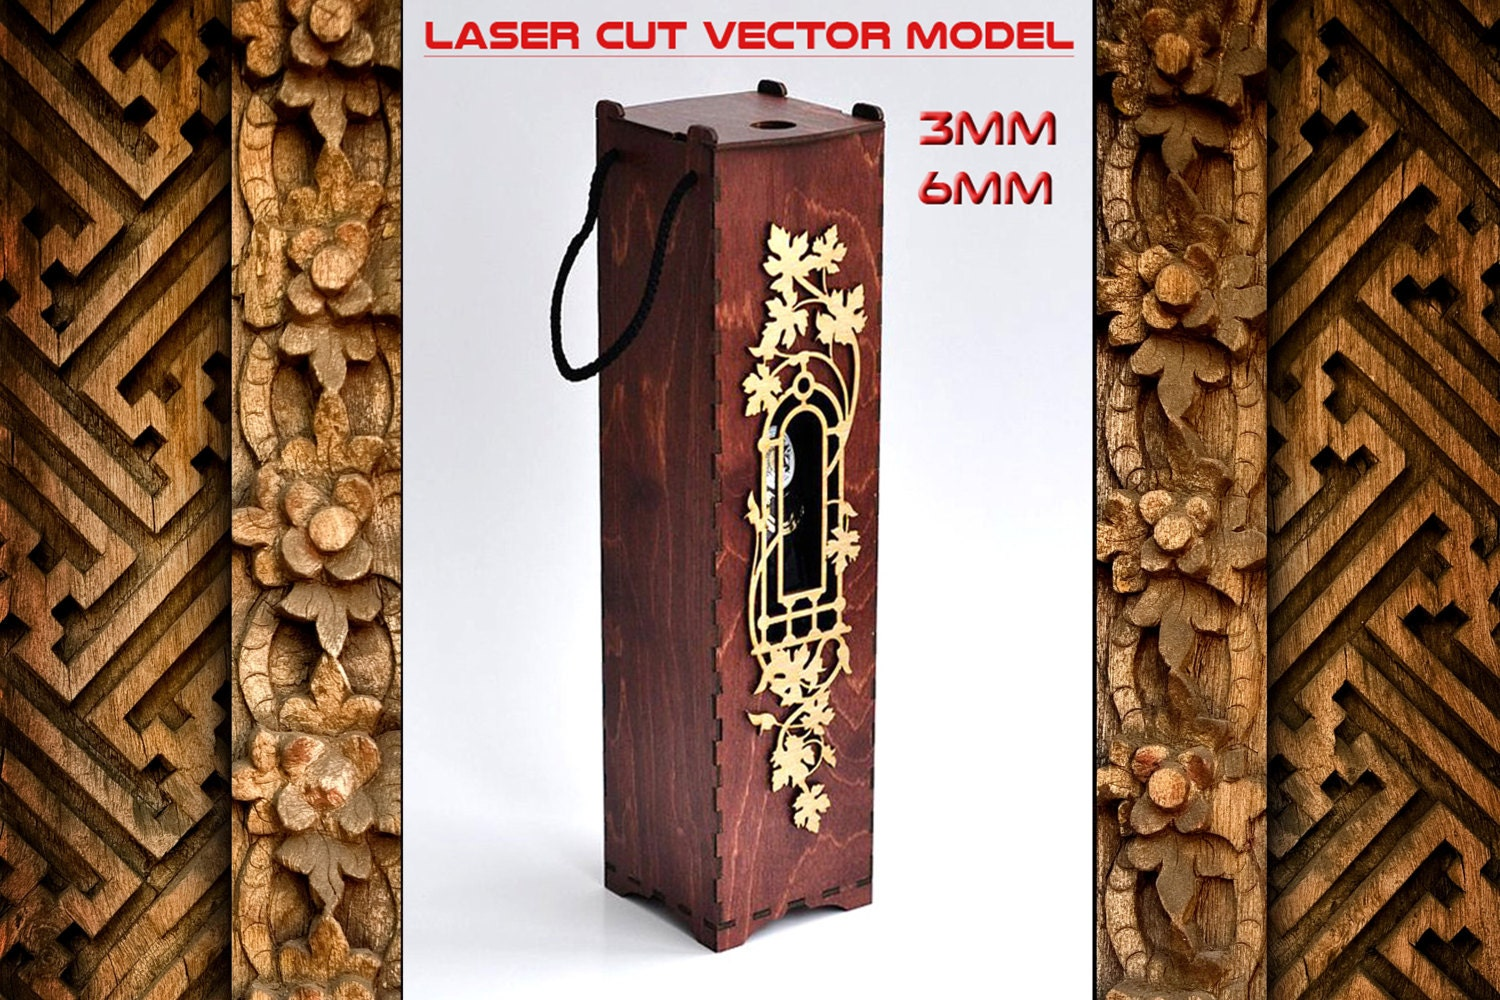 Wine Box Plans For Laser Cnc Cutting Wooden Box Plywood